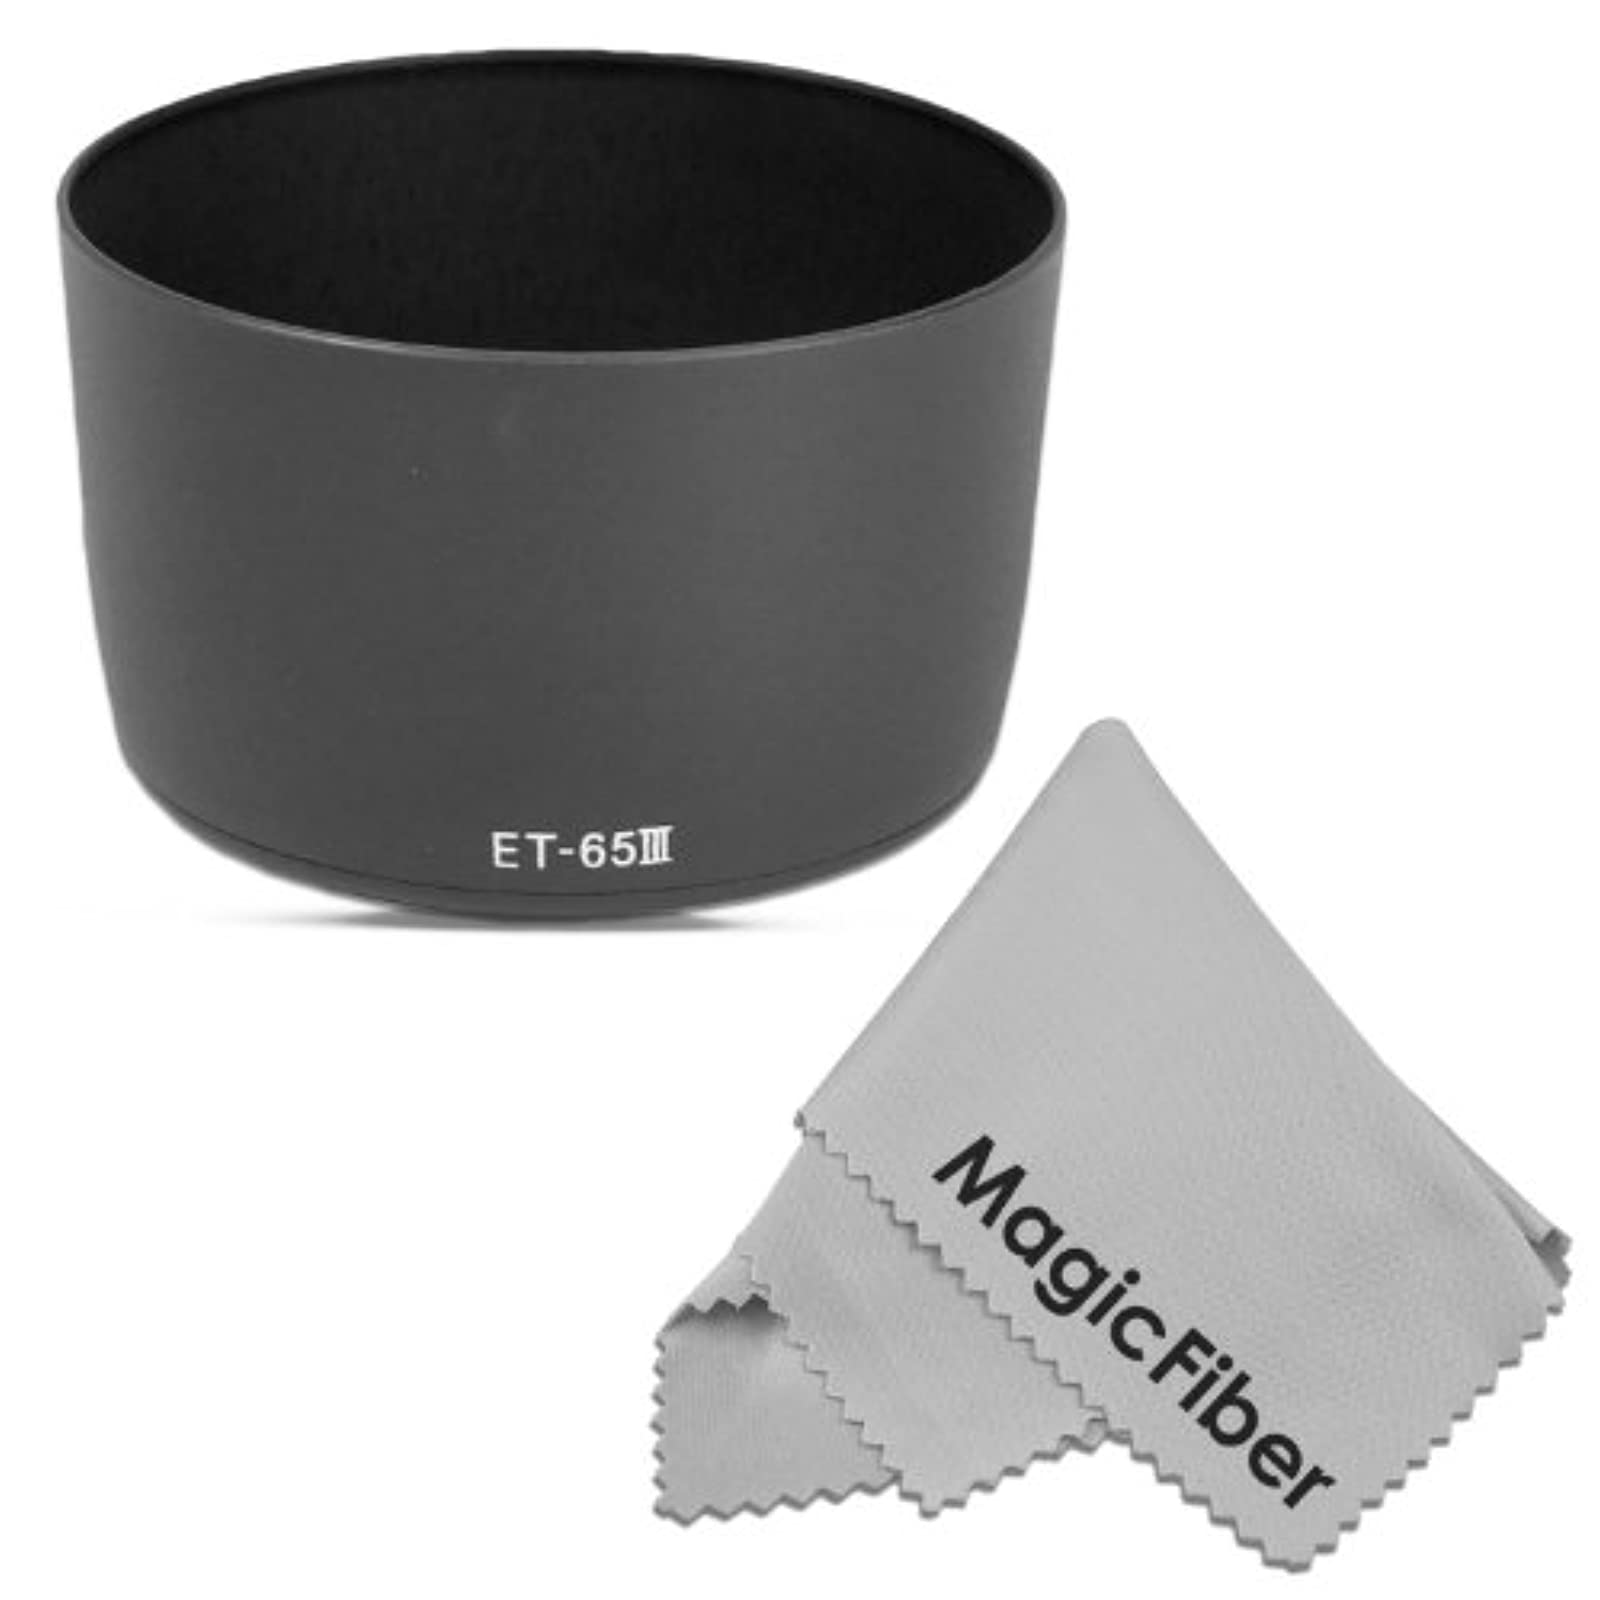 ET-65III Dedicated Altura Photo Lens Hood For Canon Ef 85MM F/1.8 Usm Ef 100MM F